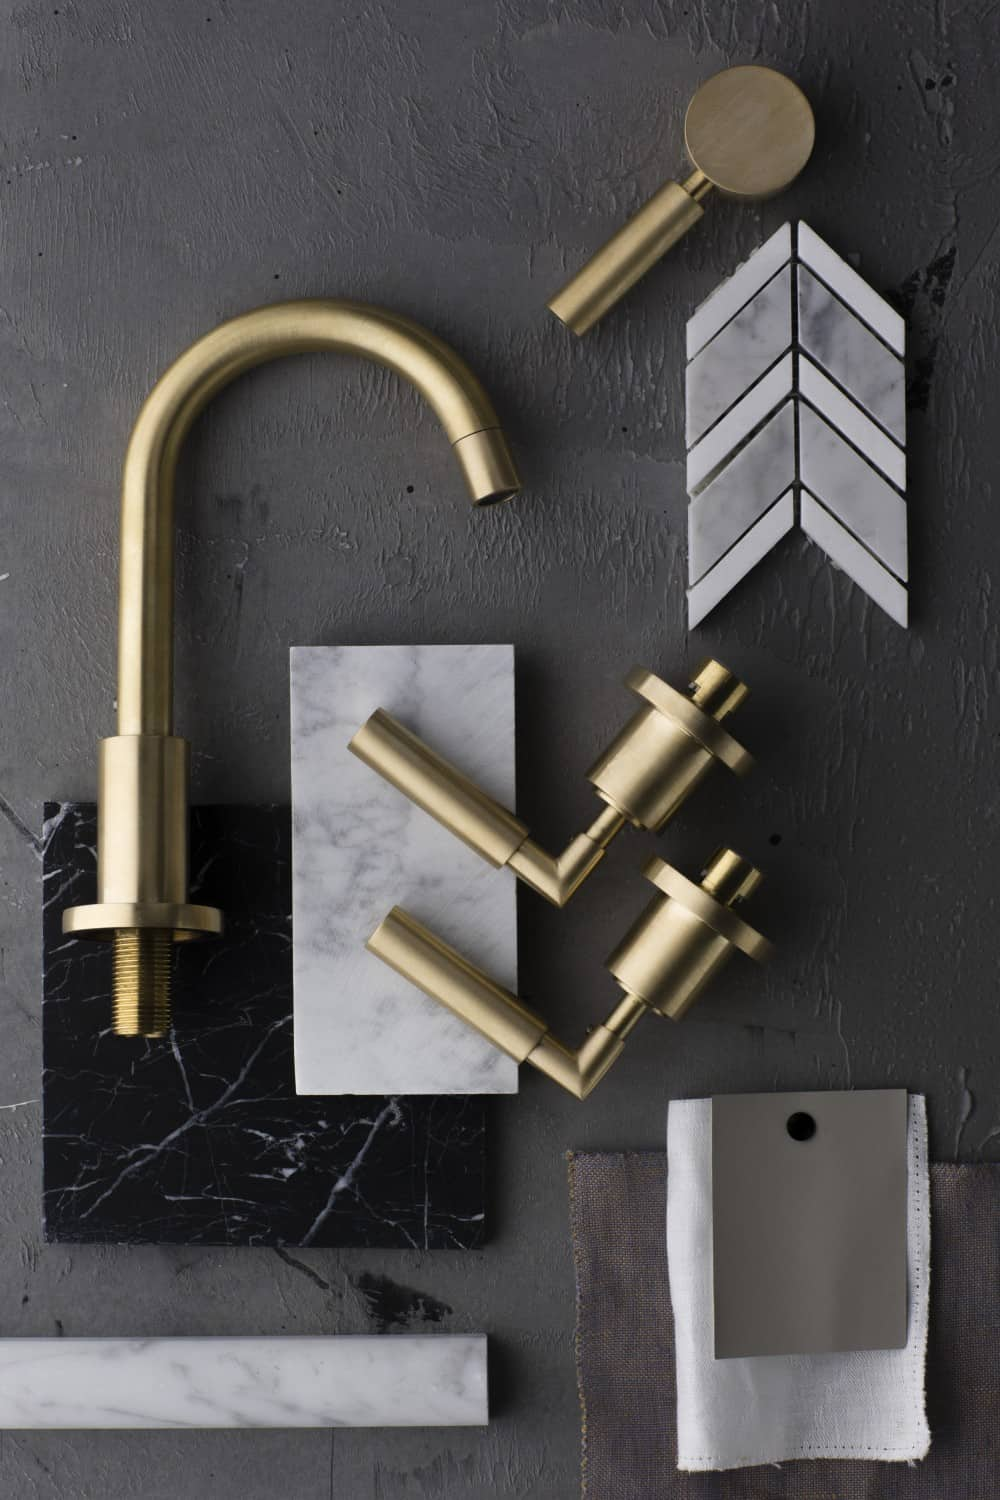 Icon-Lever-Flatlay_Eco-Brass-p1emvad0i8161g5b39iu1mg11gqt, Kitchen Renovation, Bathroom Renovation, House Renovation Auckland